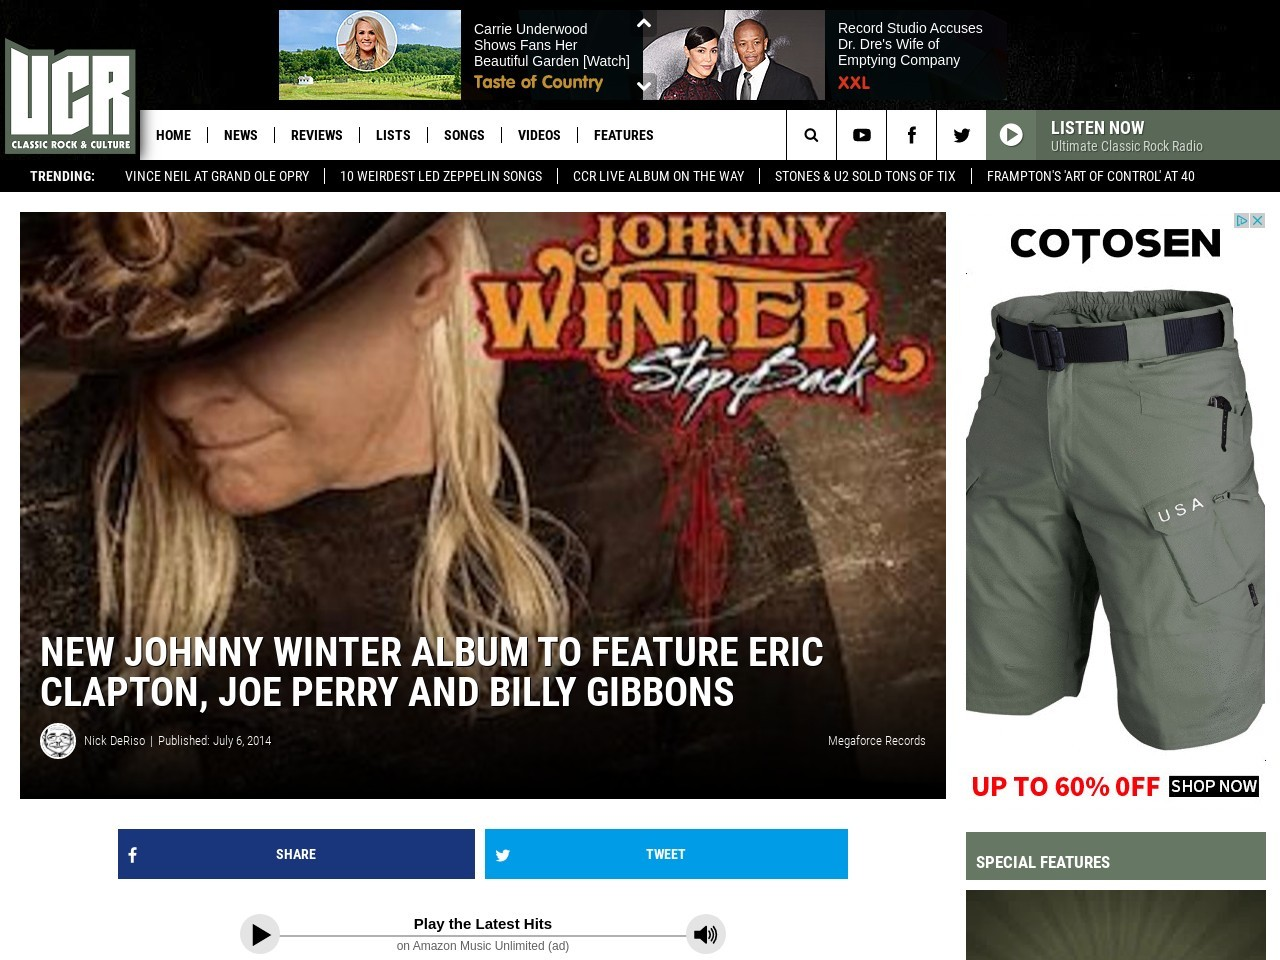 New Johnny Winter Album To Feature Eric Clapton, Joe Perry and Billy Gibbons